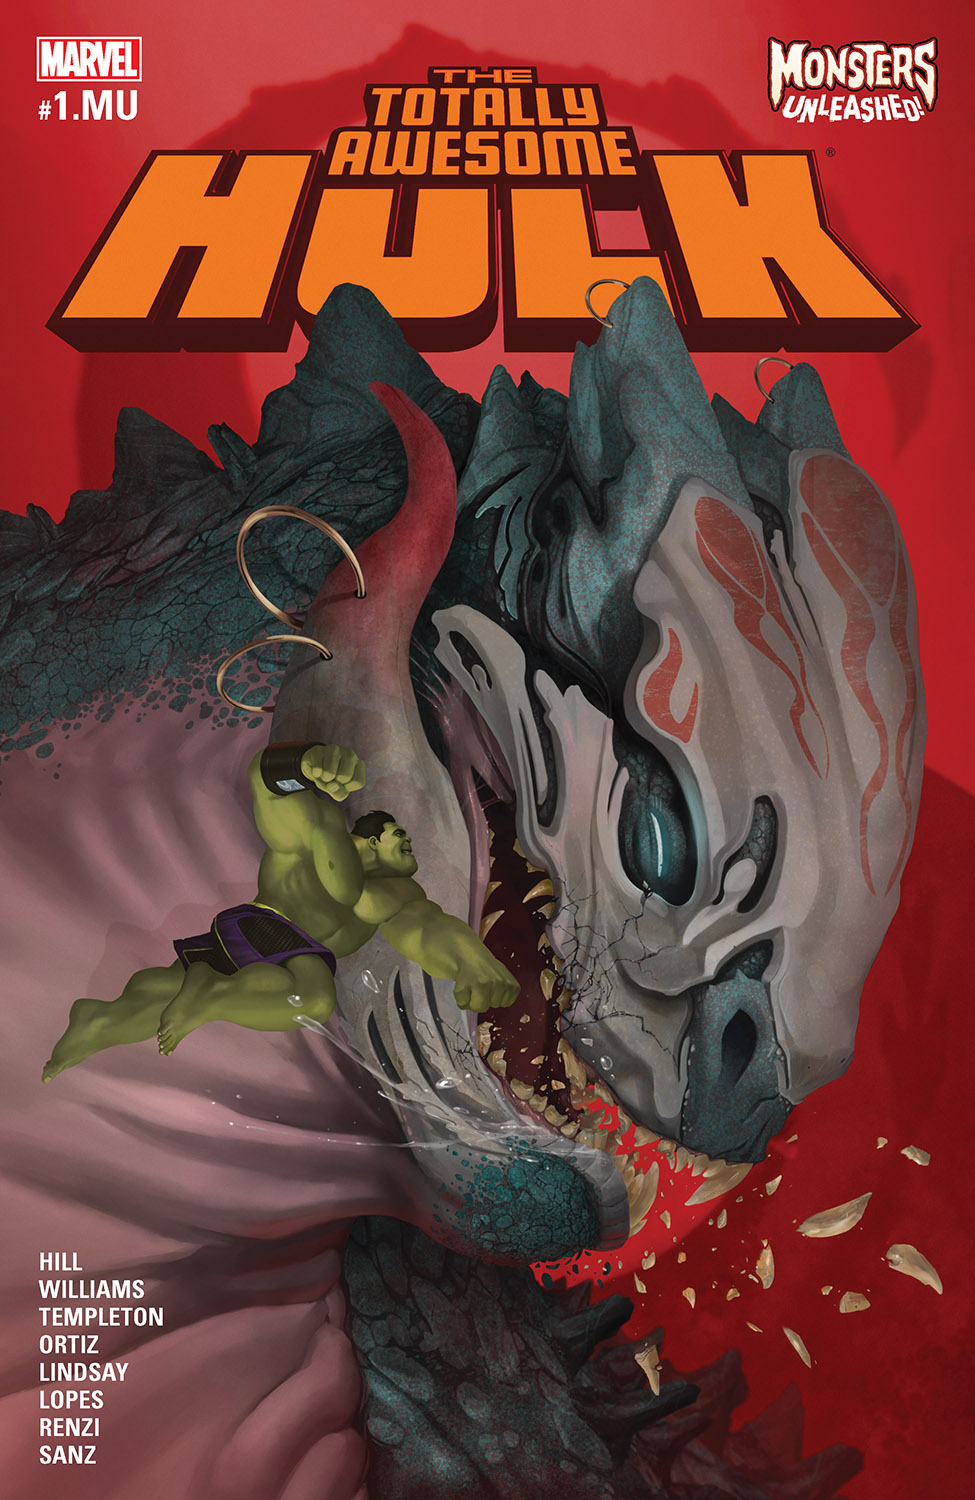 The Totally Awesome Hulk (2015) #1.1